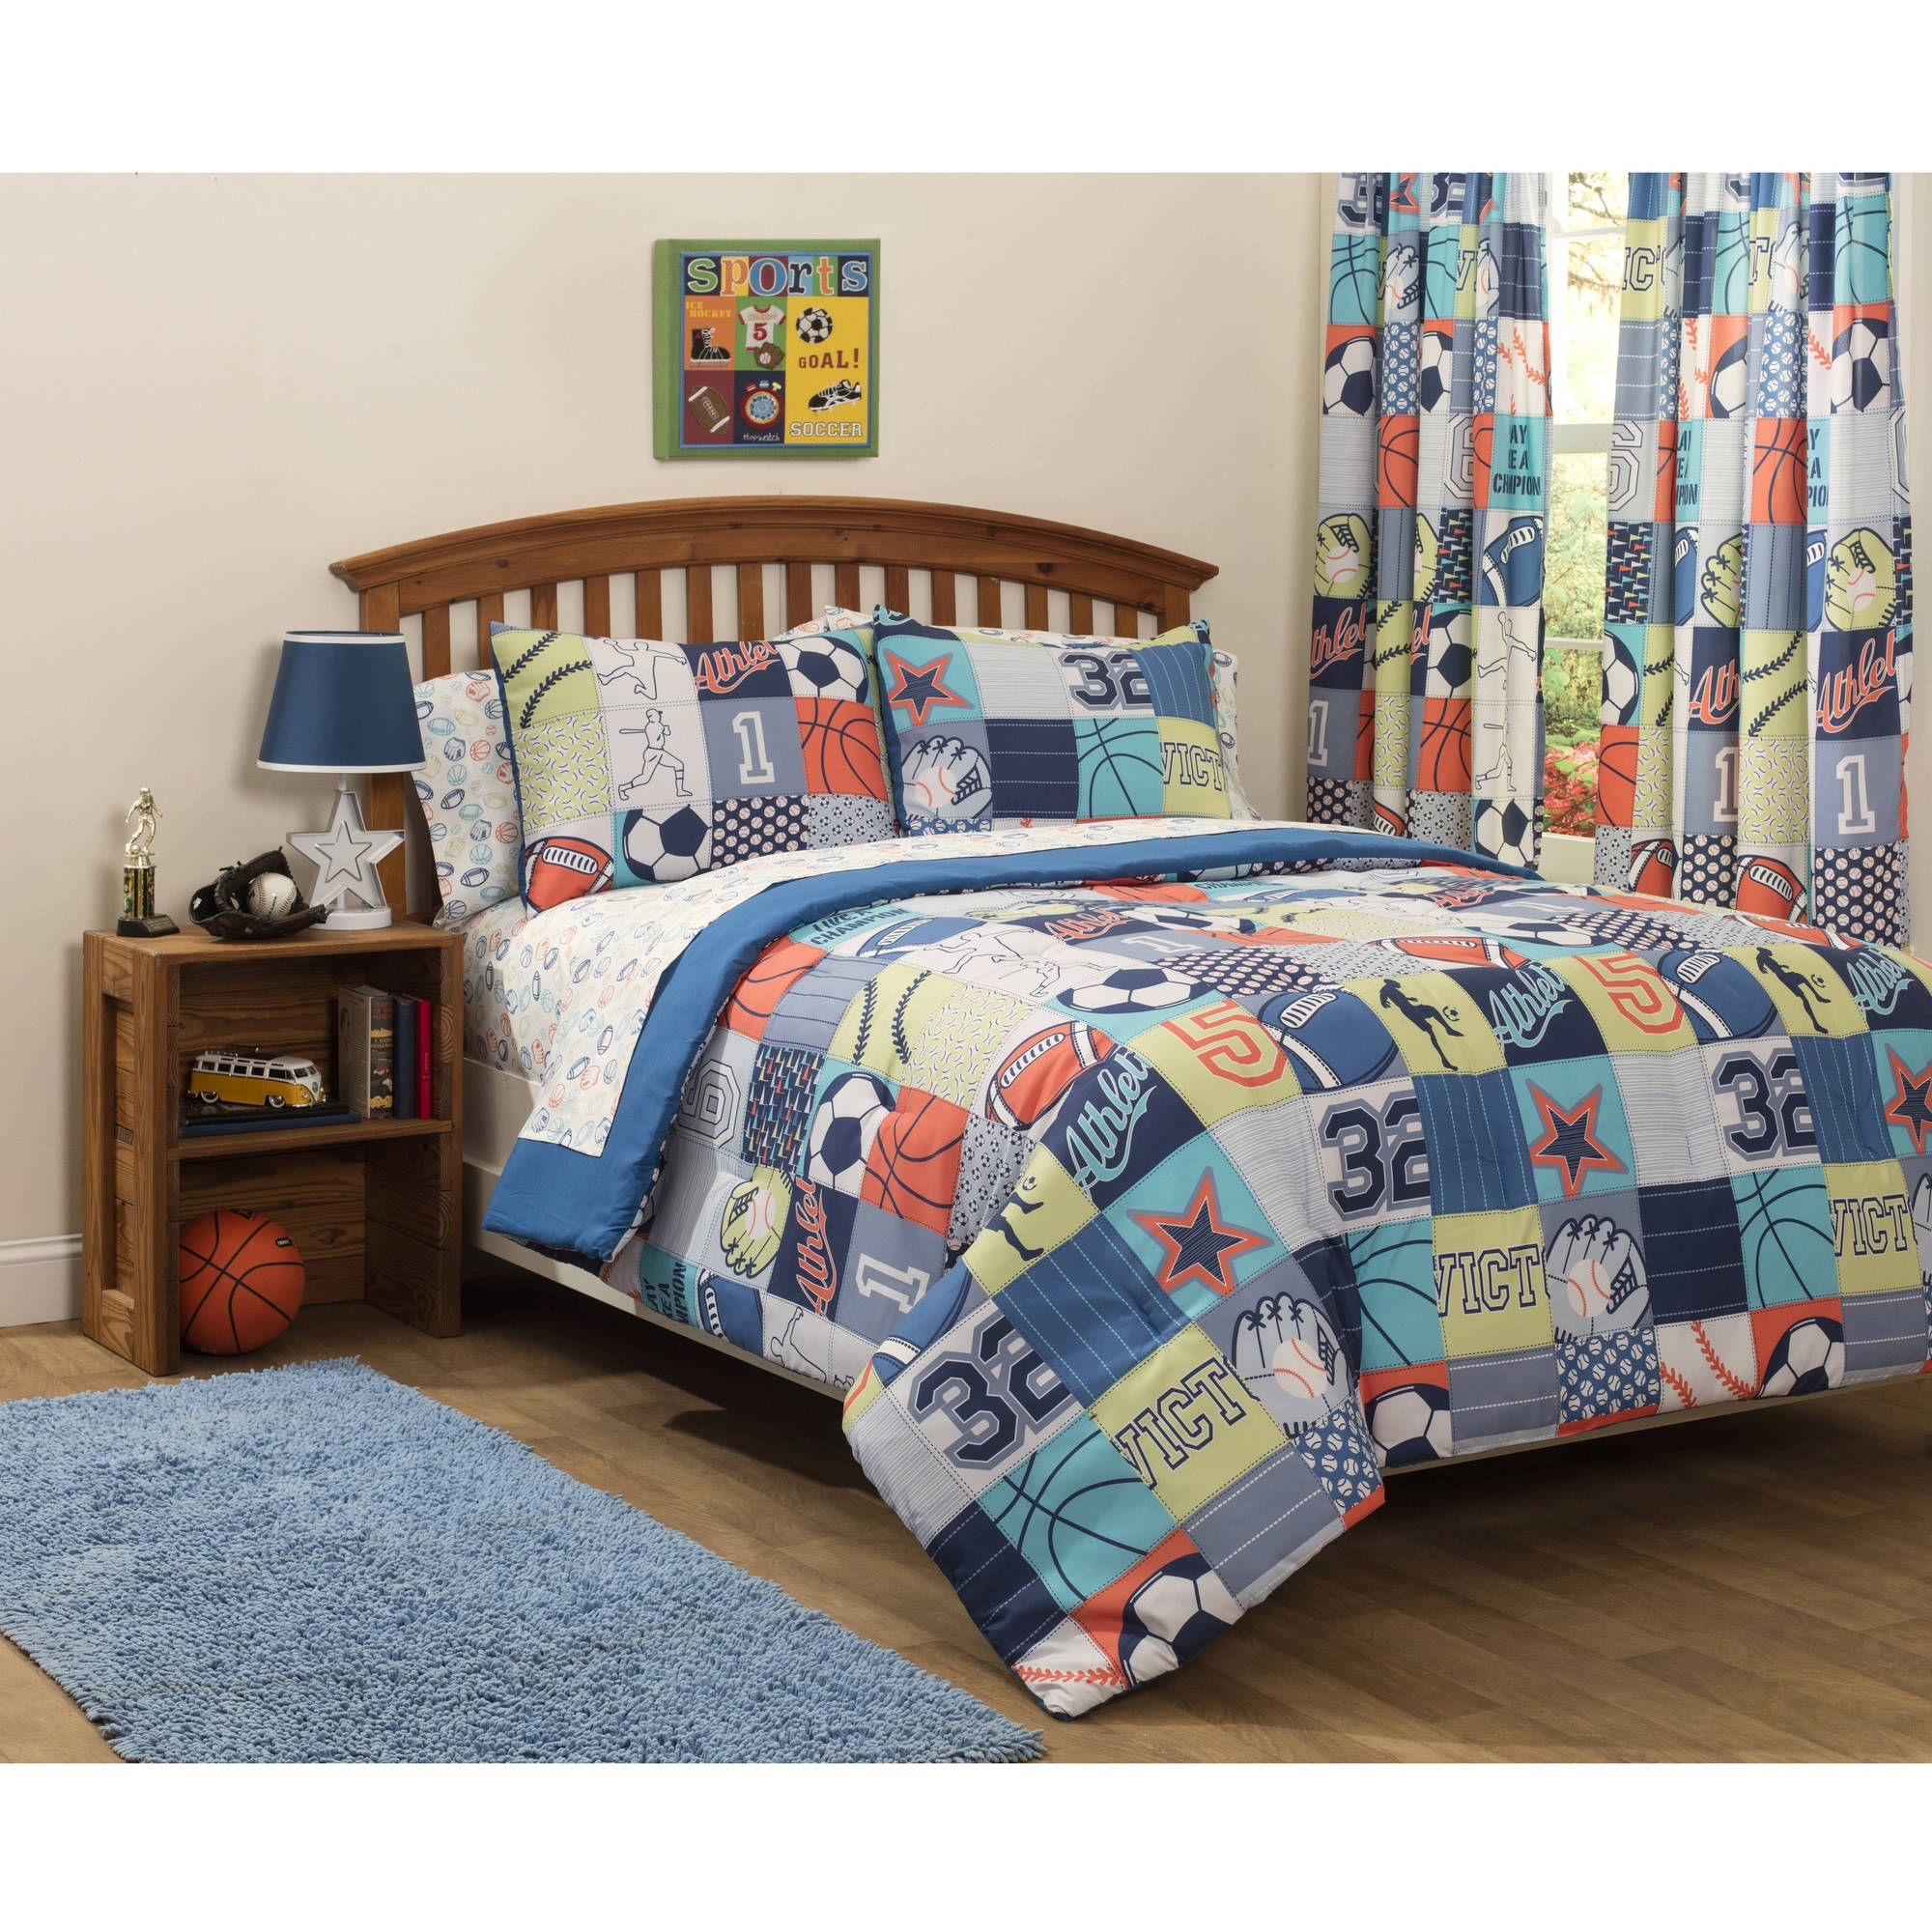 on kids and stars free over comforter hart piece overstock bath set sports product orders bedding laura shipping